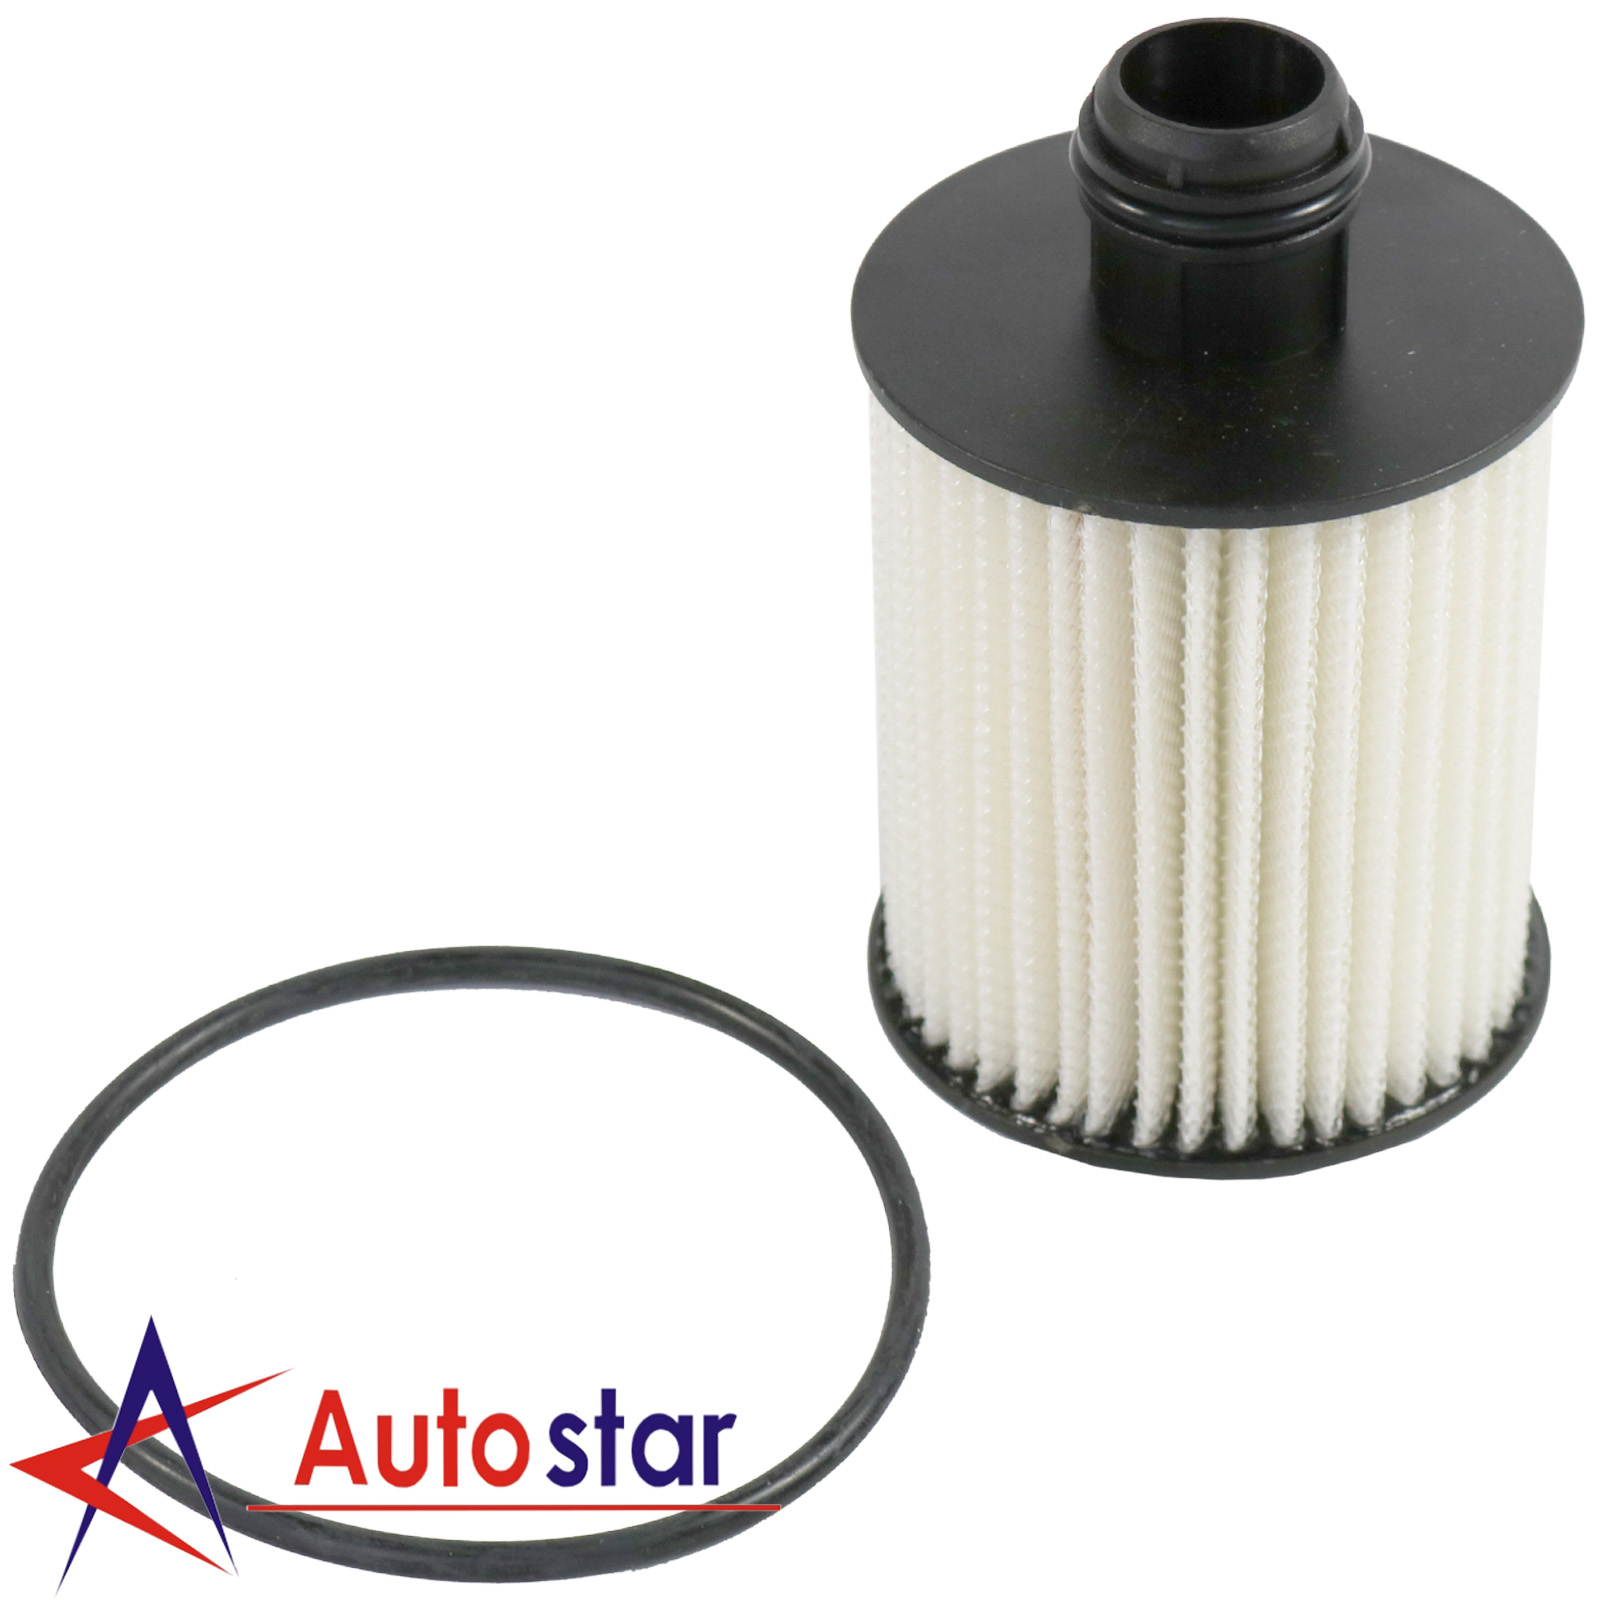 6pcs Oil Filter L9934 For 2014 2015 Chevy Cruze 2 0l